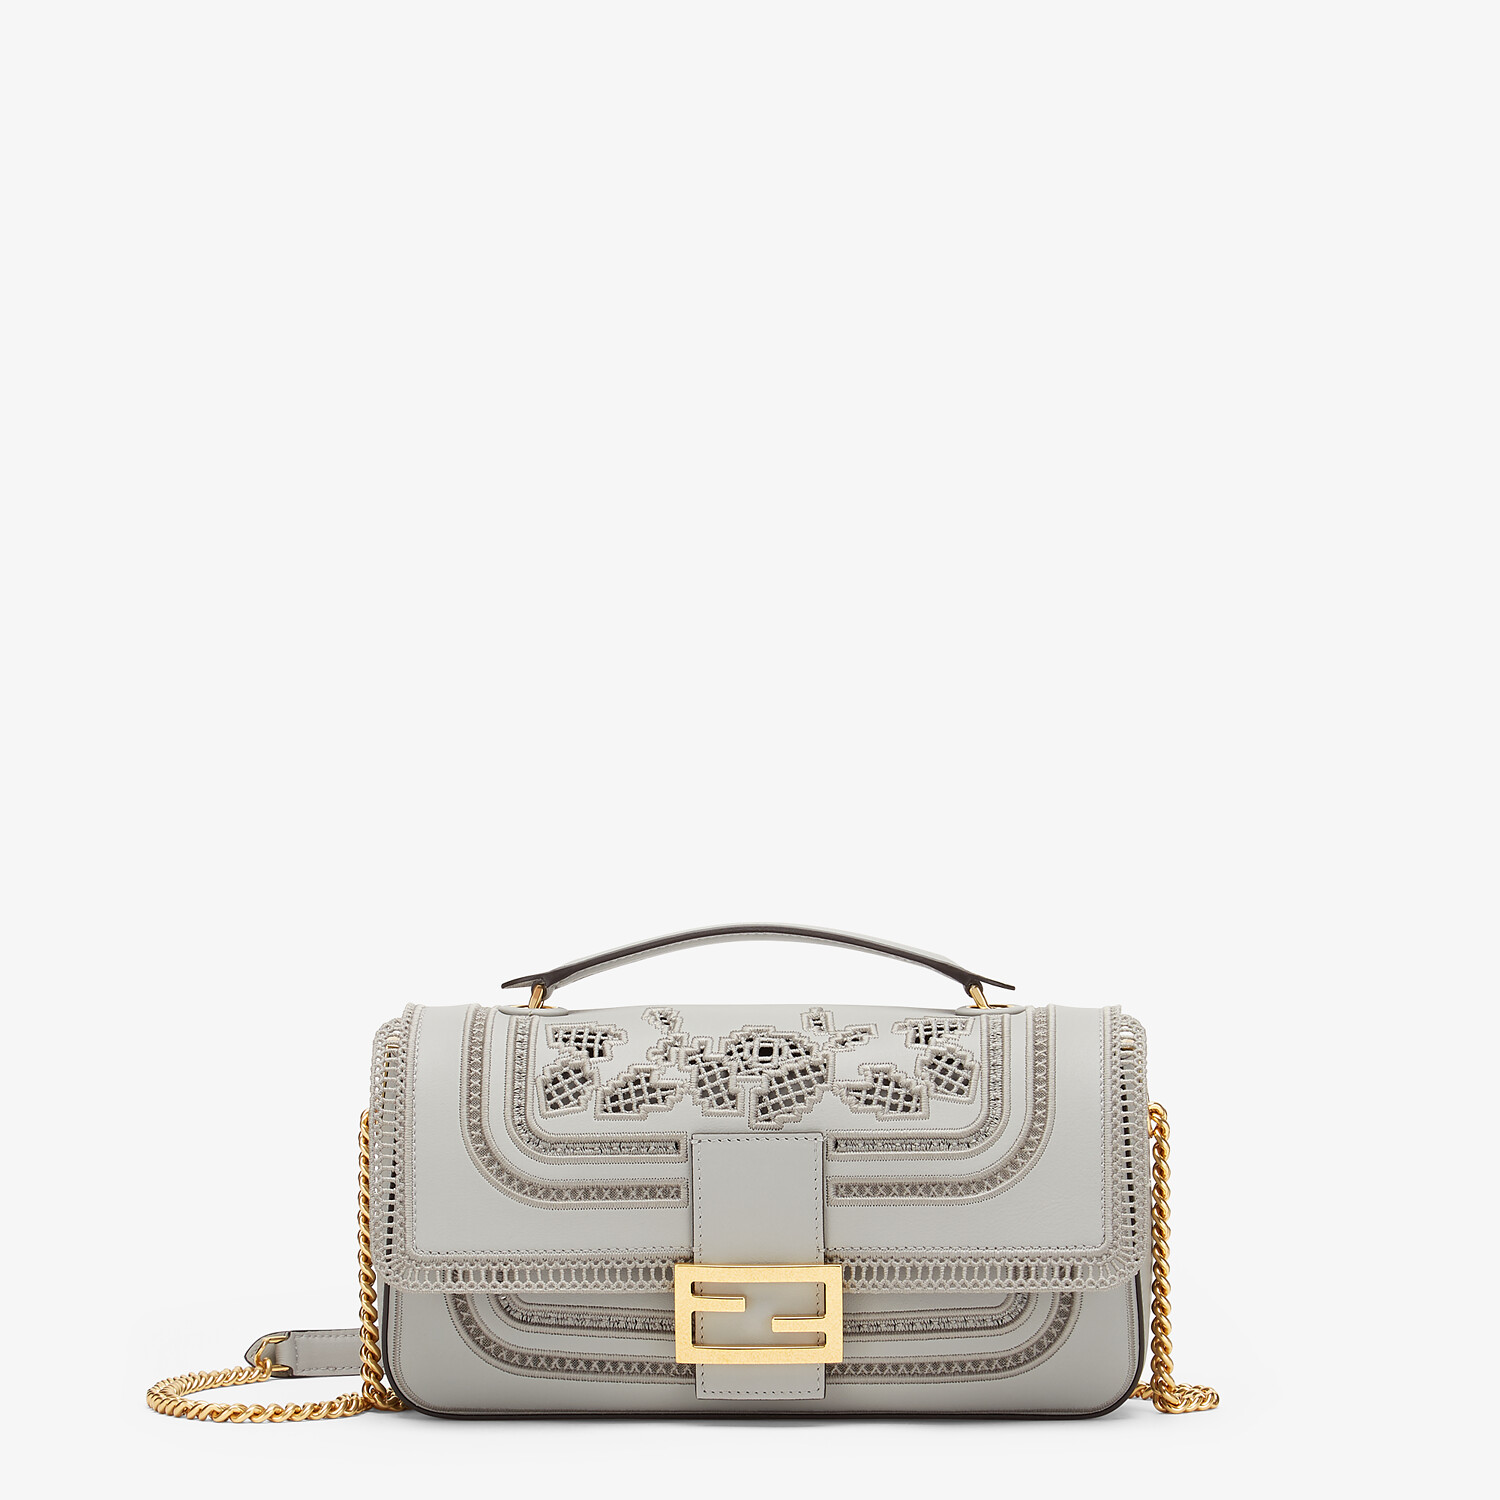 FENDI BAGUETTE CHAIN - Embroidered gray leather bag - view 1 detail